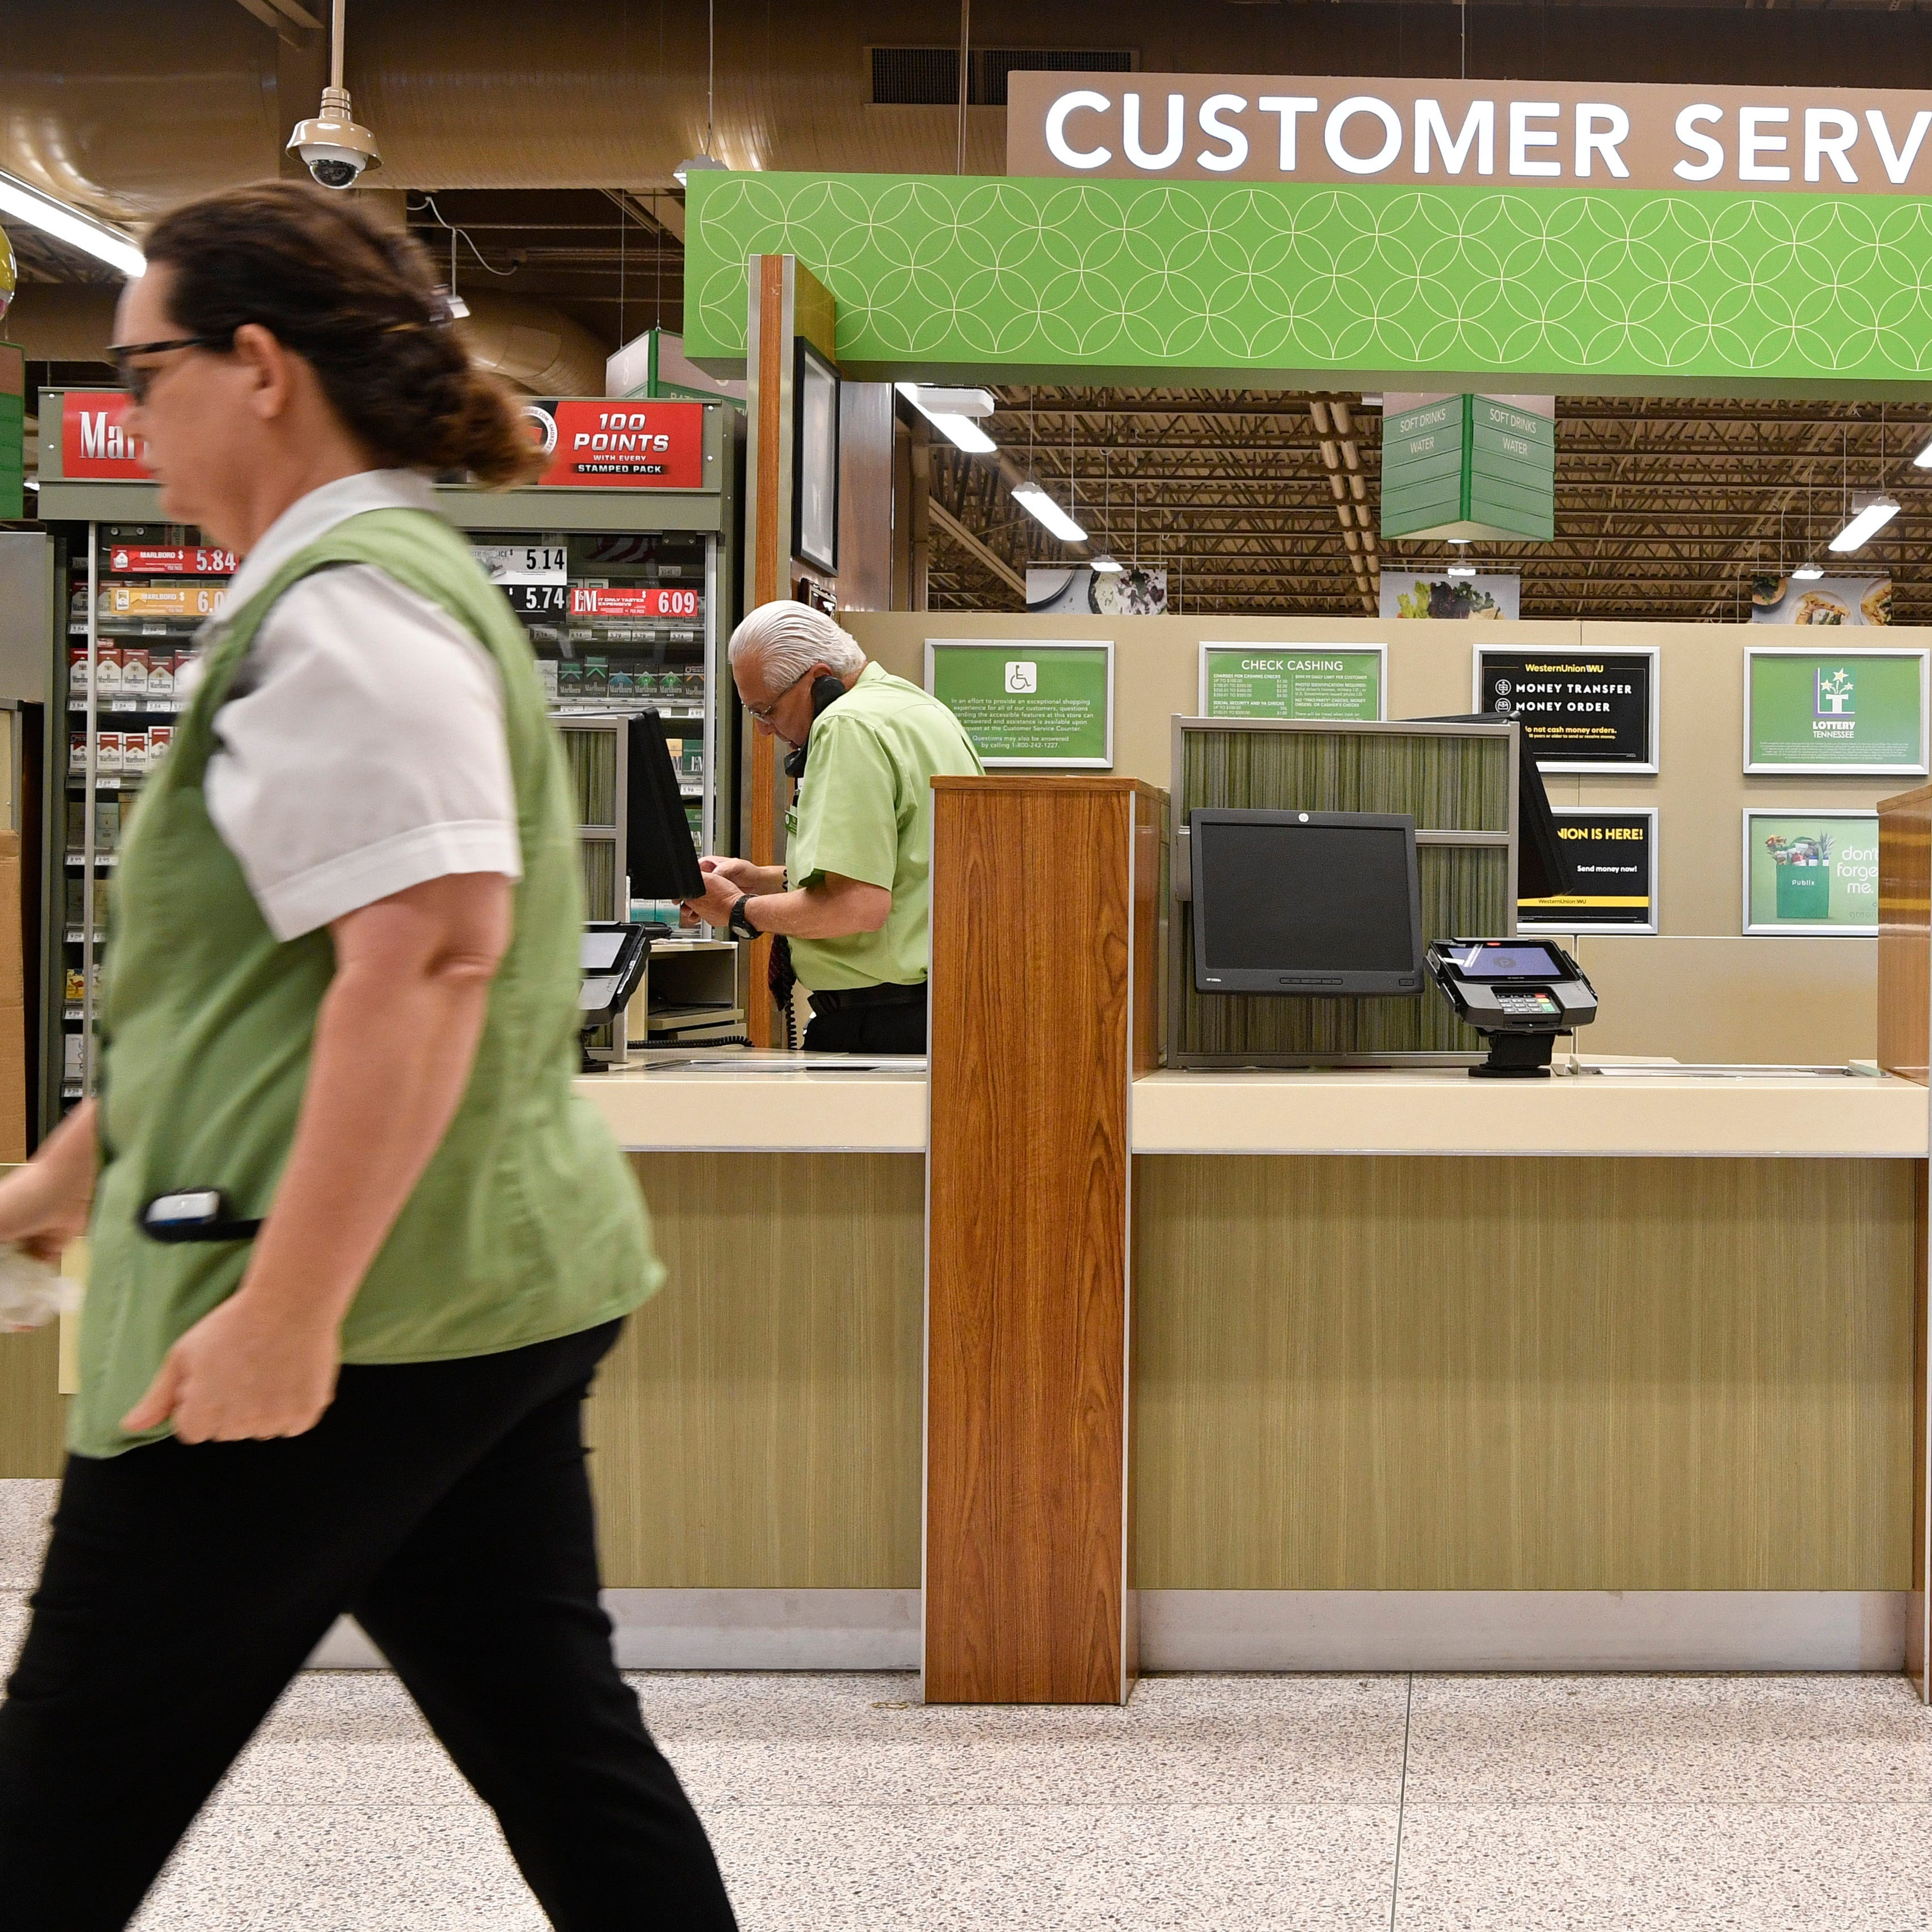 When's that Whole Foods going to open? A look at what's next in Nashville's grocery store wars